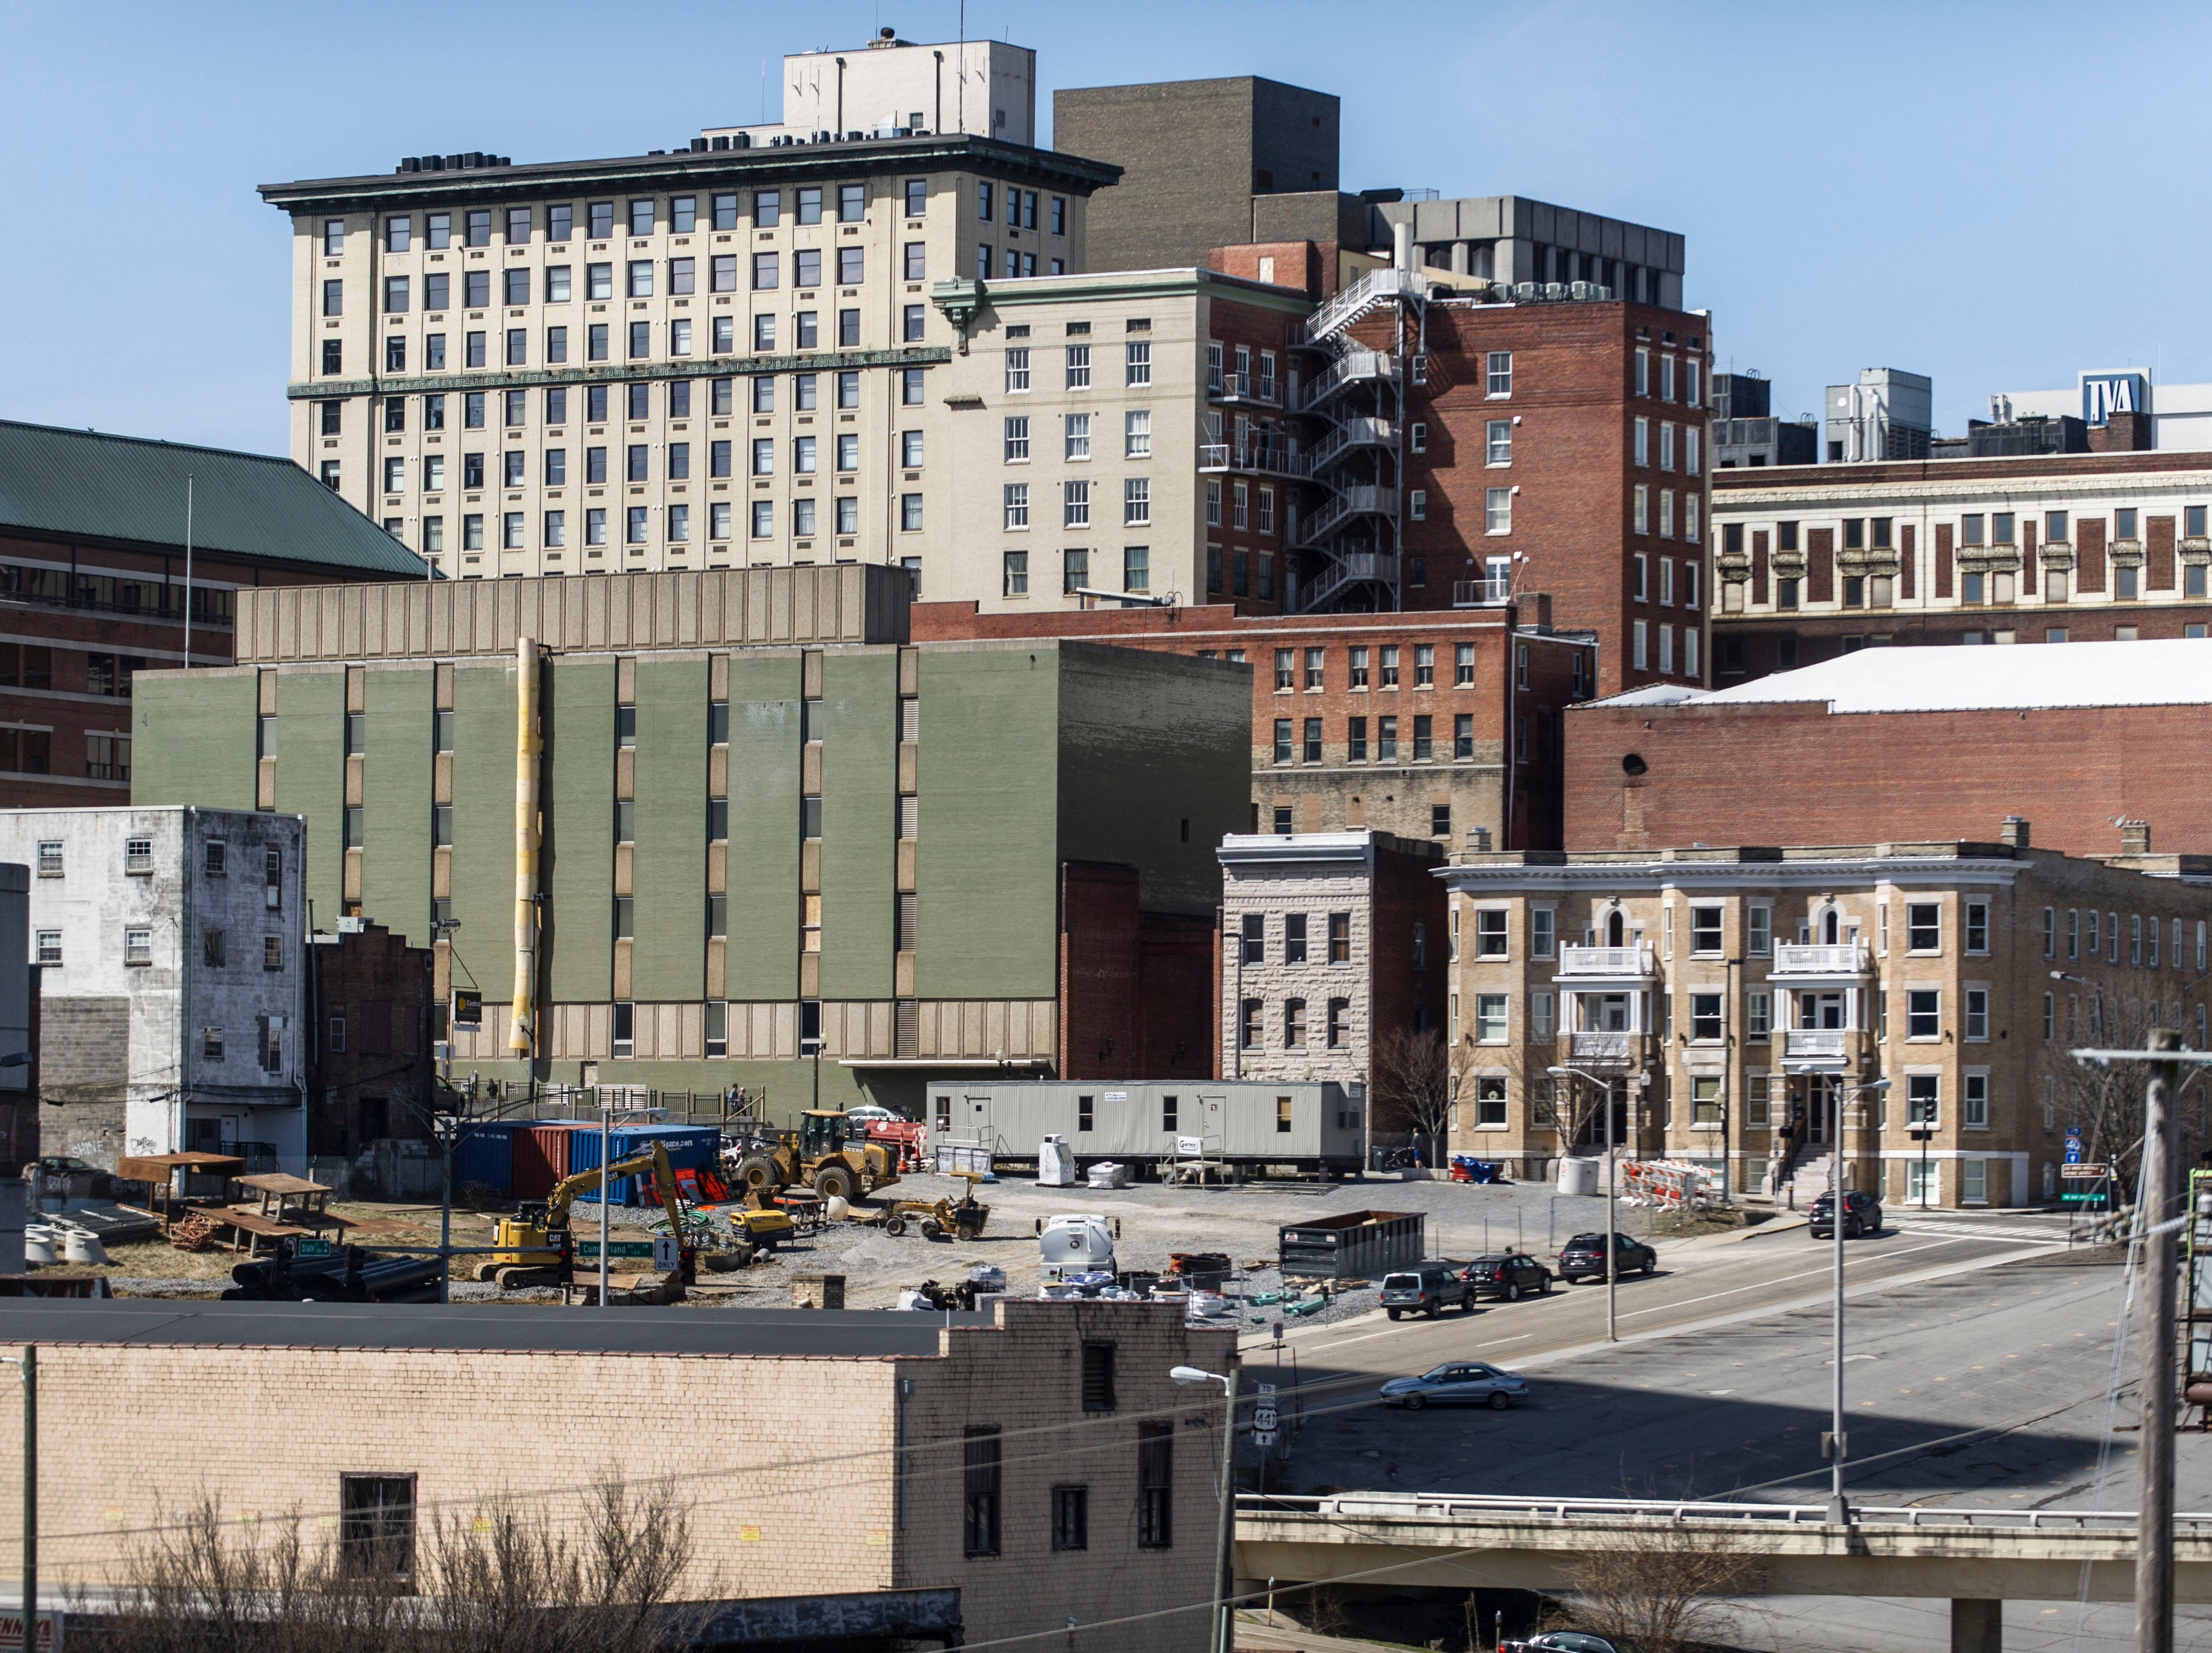 A portion of the downtown skyline is pictured March 8, 2015. Among the buildings are the Elliot condominiums, the former KUB headquarters, the Tennessee Theatre, and the Holston condominiums. The large vacant lot is the former News Sentinel building site.